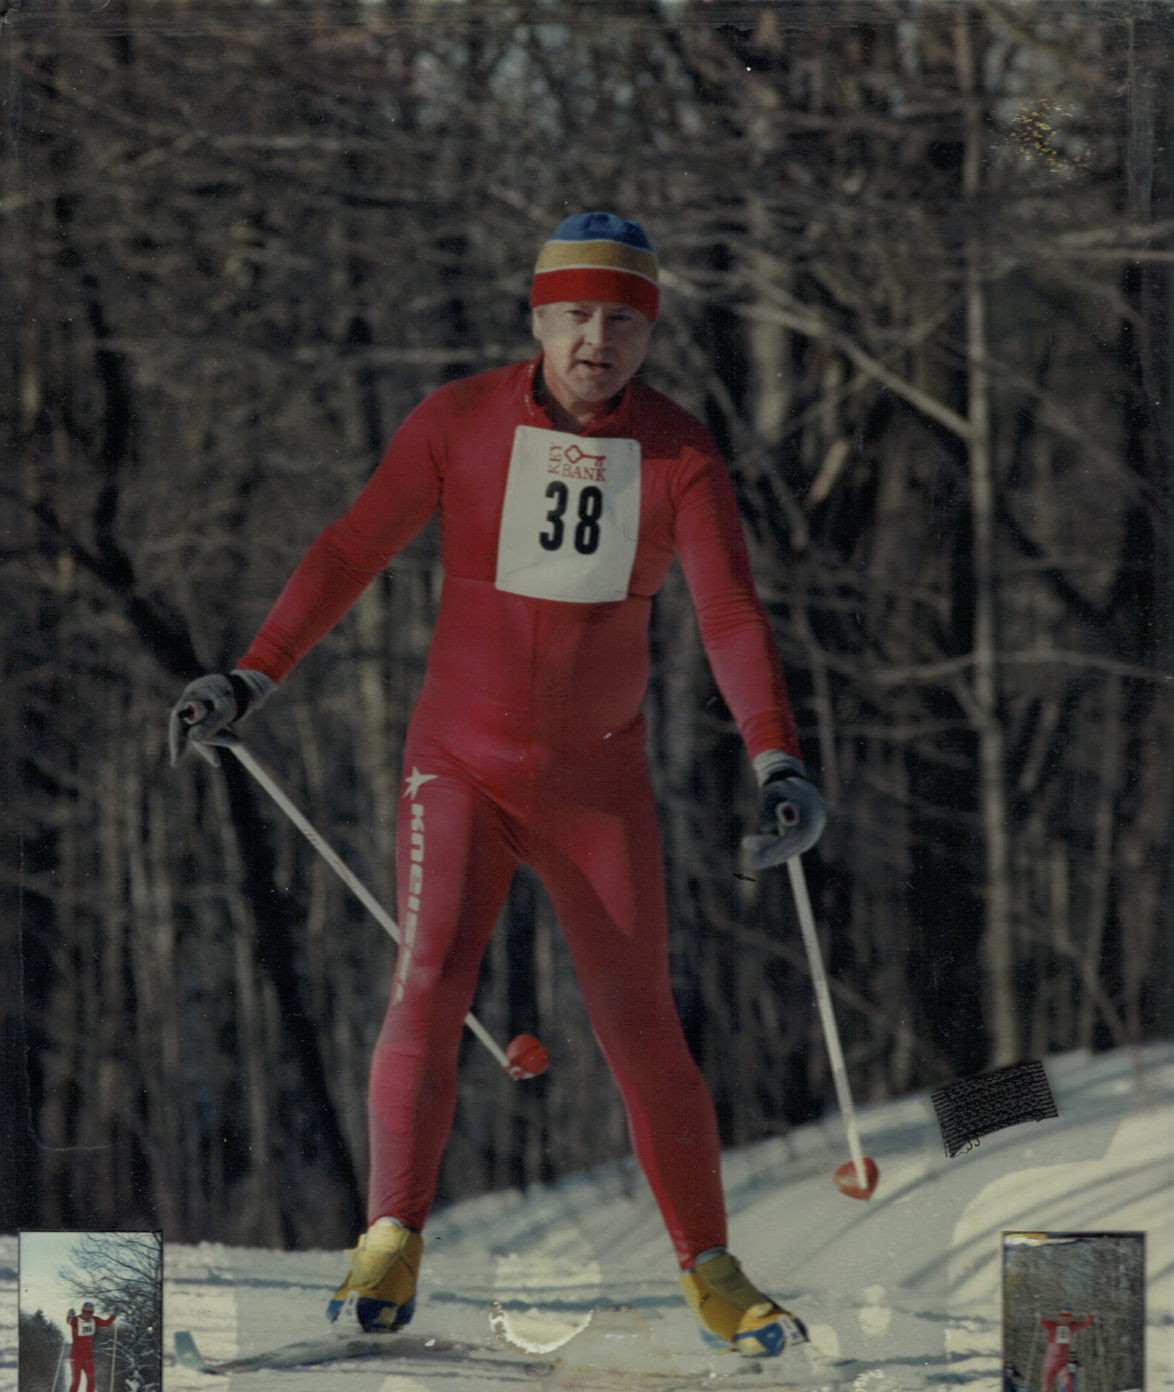 Finishing a 32K cross country ski race on the Tug Hill Plateau in upstate New York